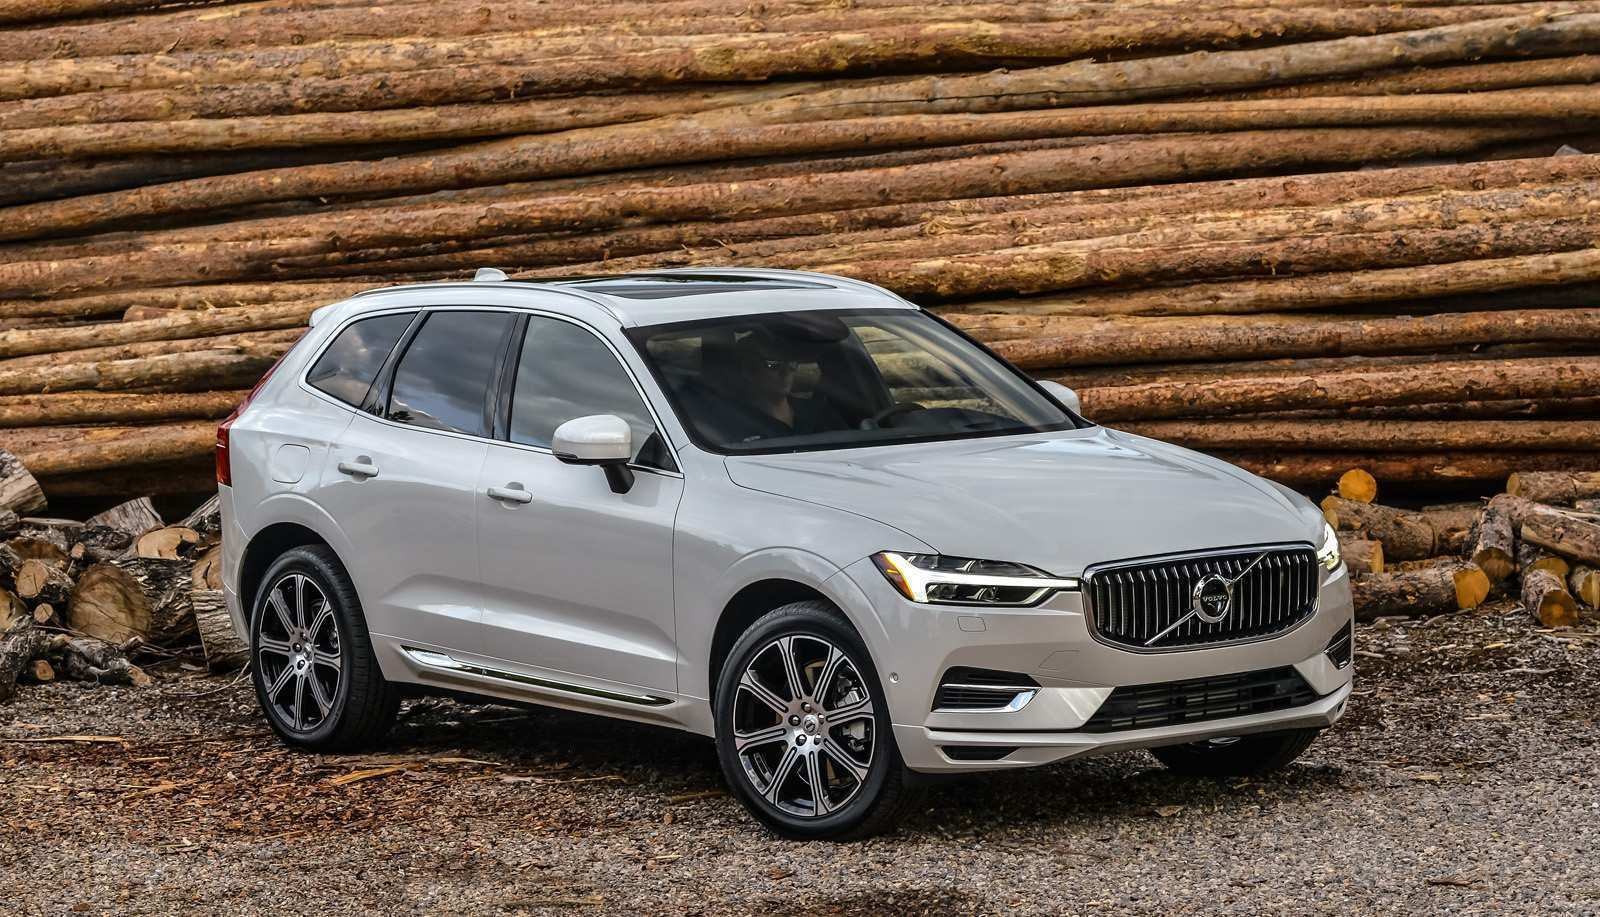 41 New The Volvo Suv 2019 First Drive New Concept by The Volvo Suv 2019 First Drive